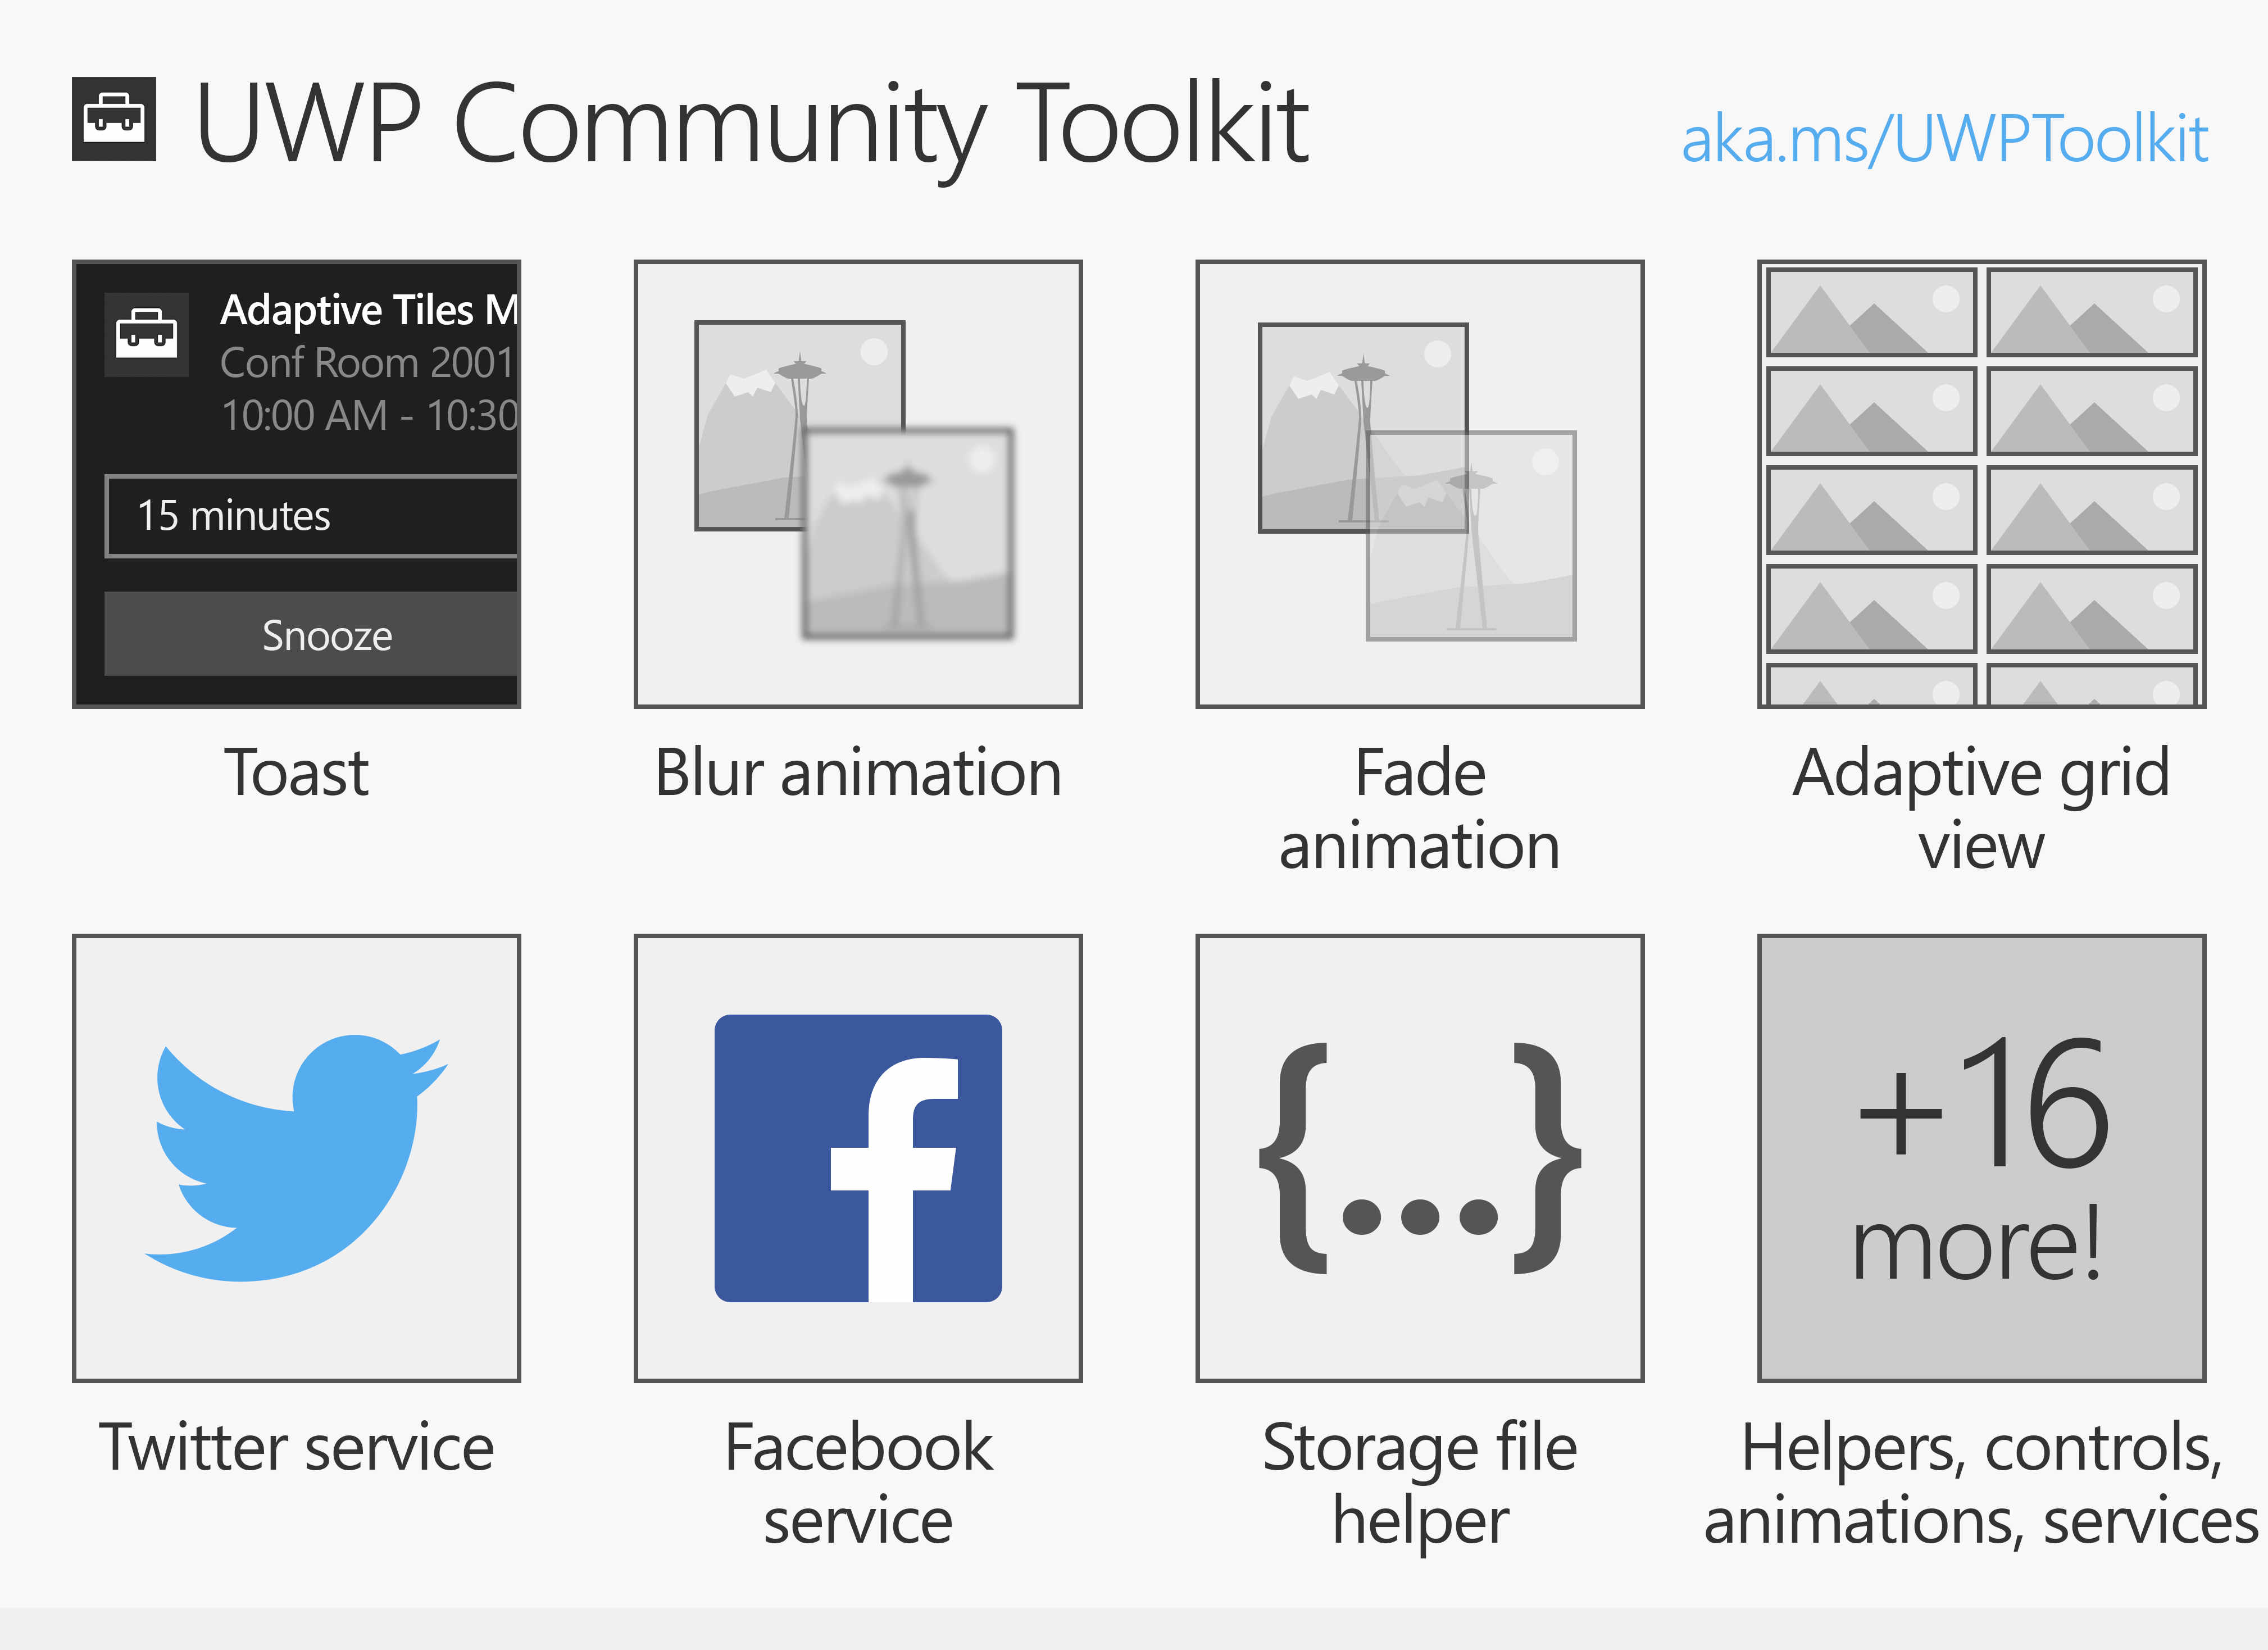 uwp community toolkit overview